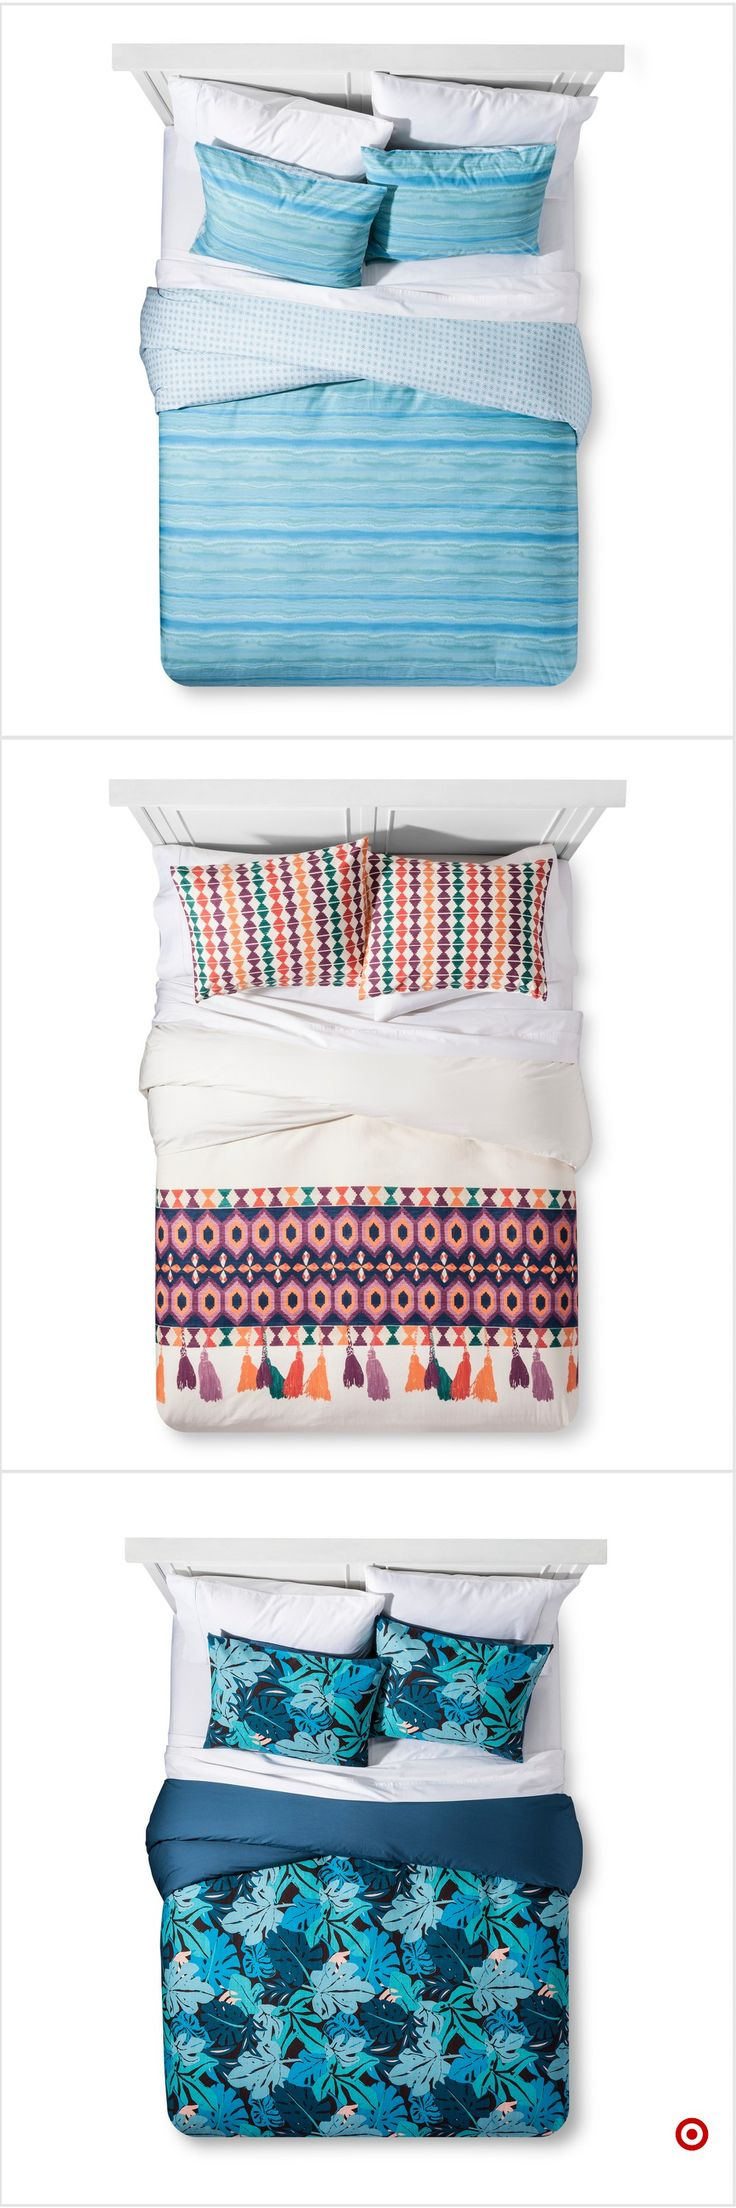 Shop Target for duvet cover set you will love at great low prices. Free shipping on orders of $35+ or free same-day pick-up in store.